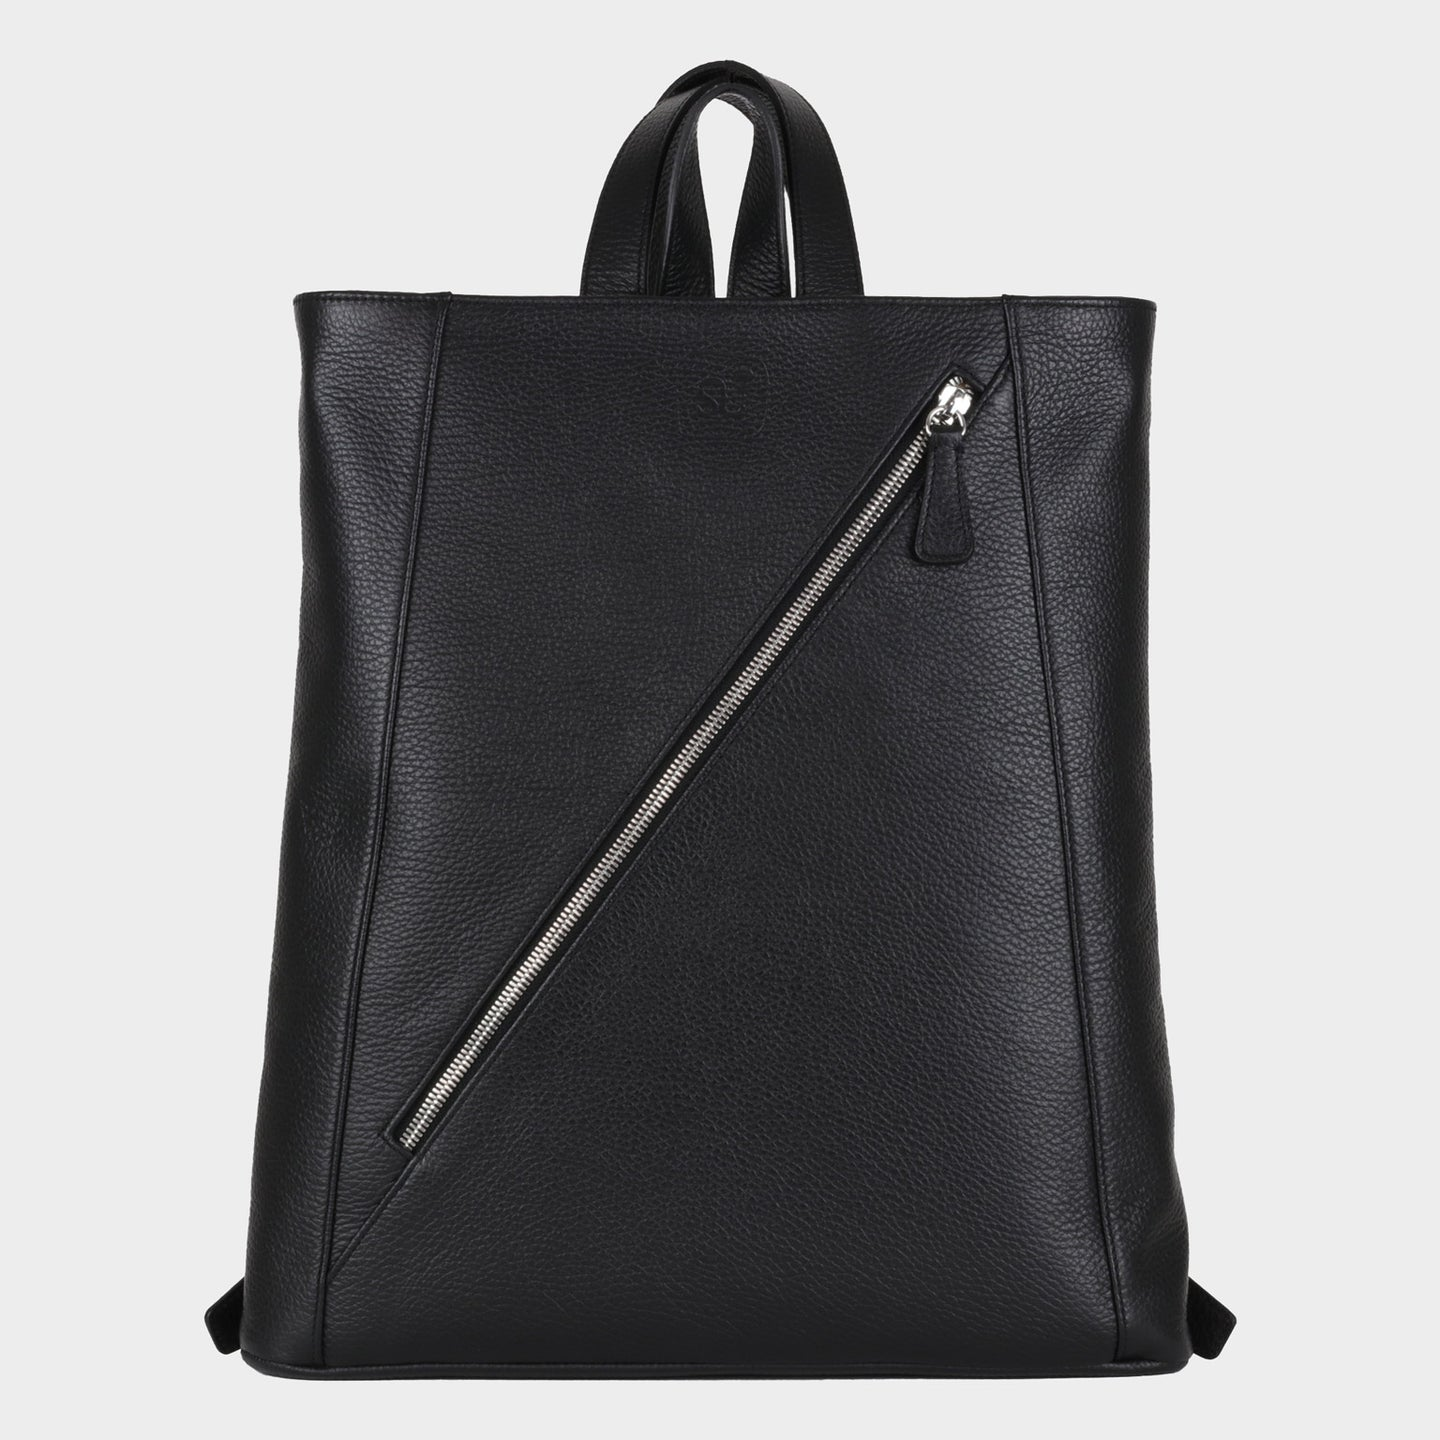 Bags-by-SUMAGEZA-SU-Backpack-slim - backpack-black-calf leather, front view-1, with long diagonal zipper, as characteristic design element